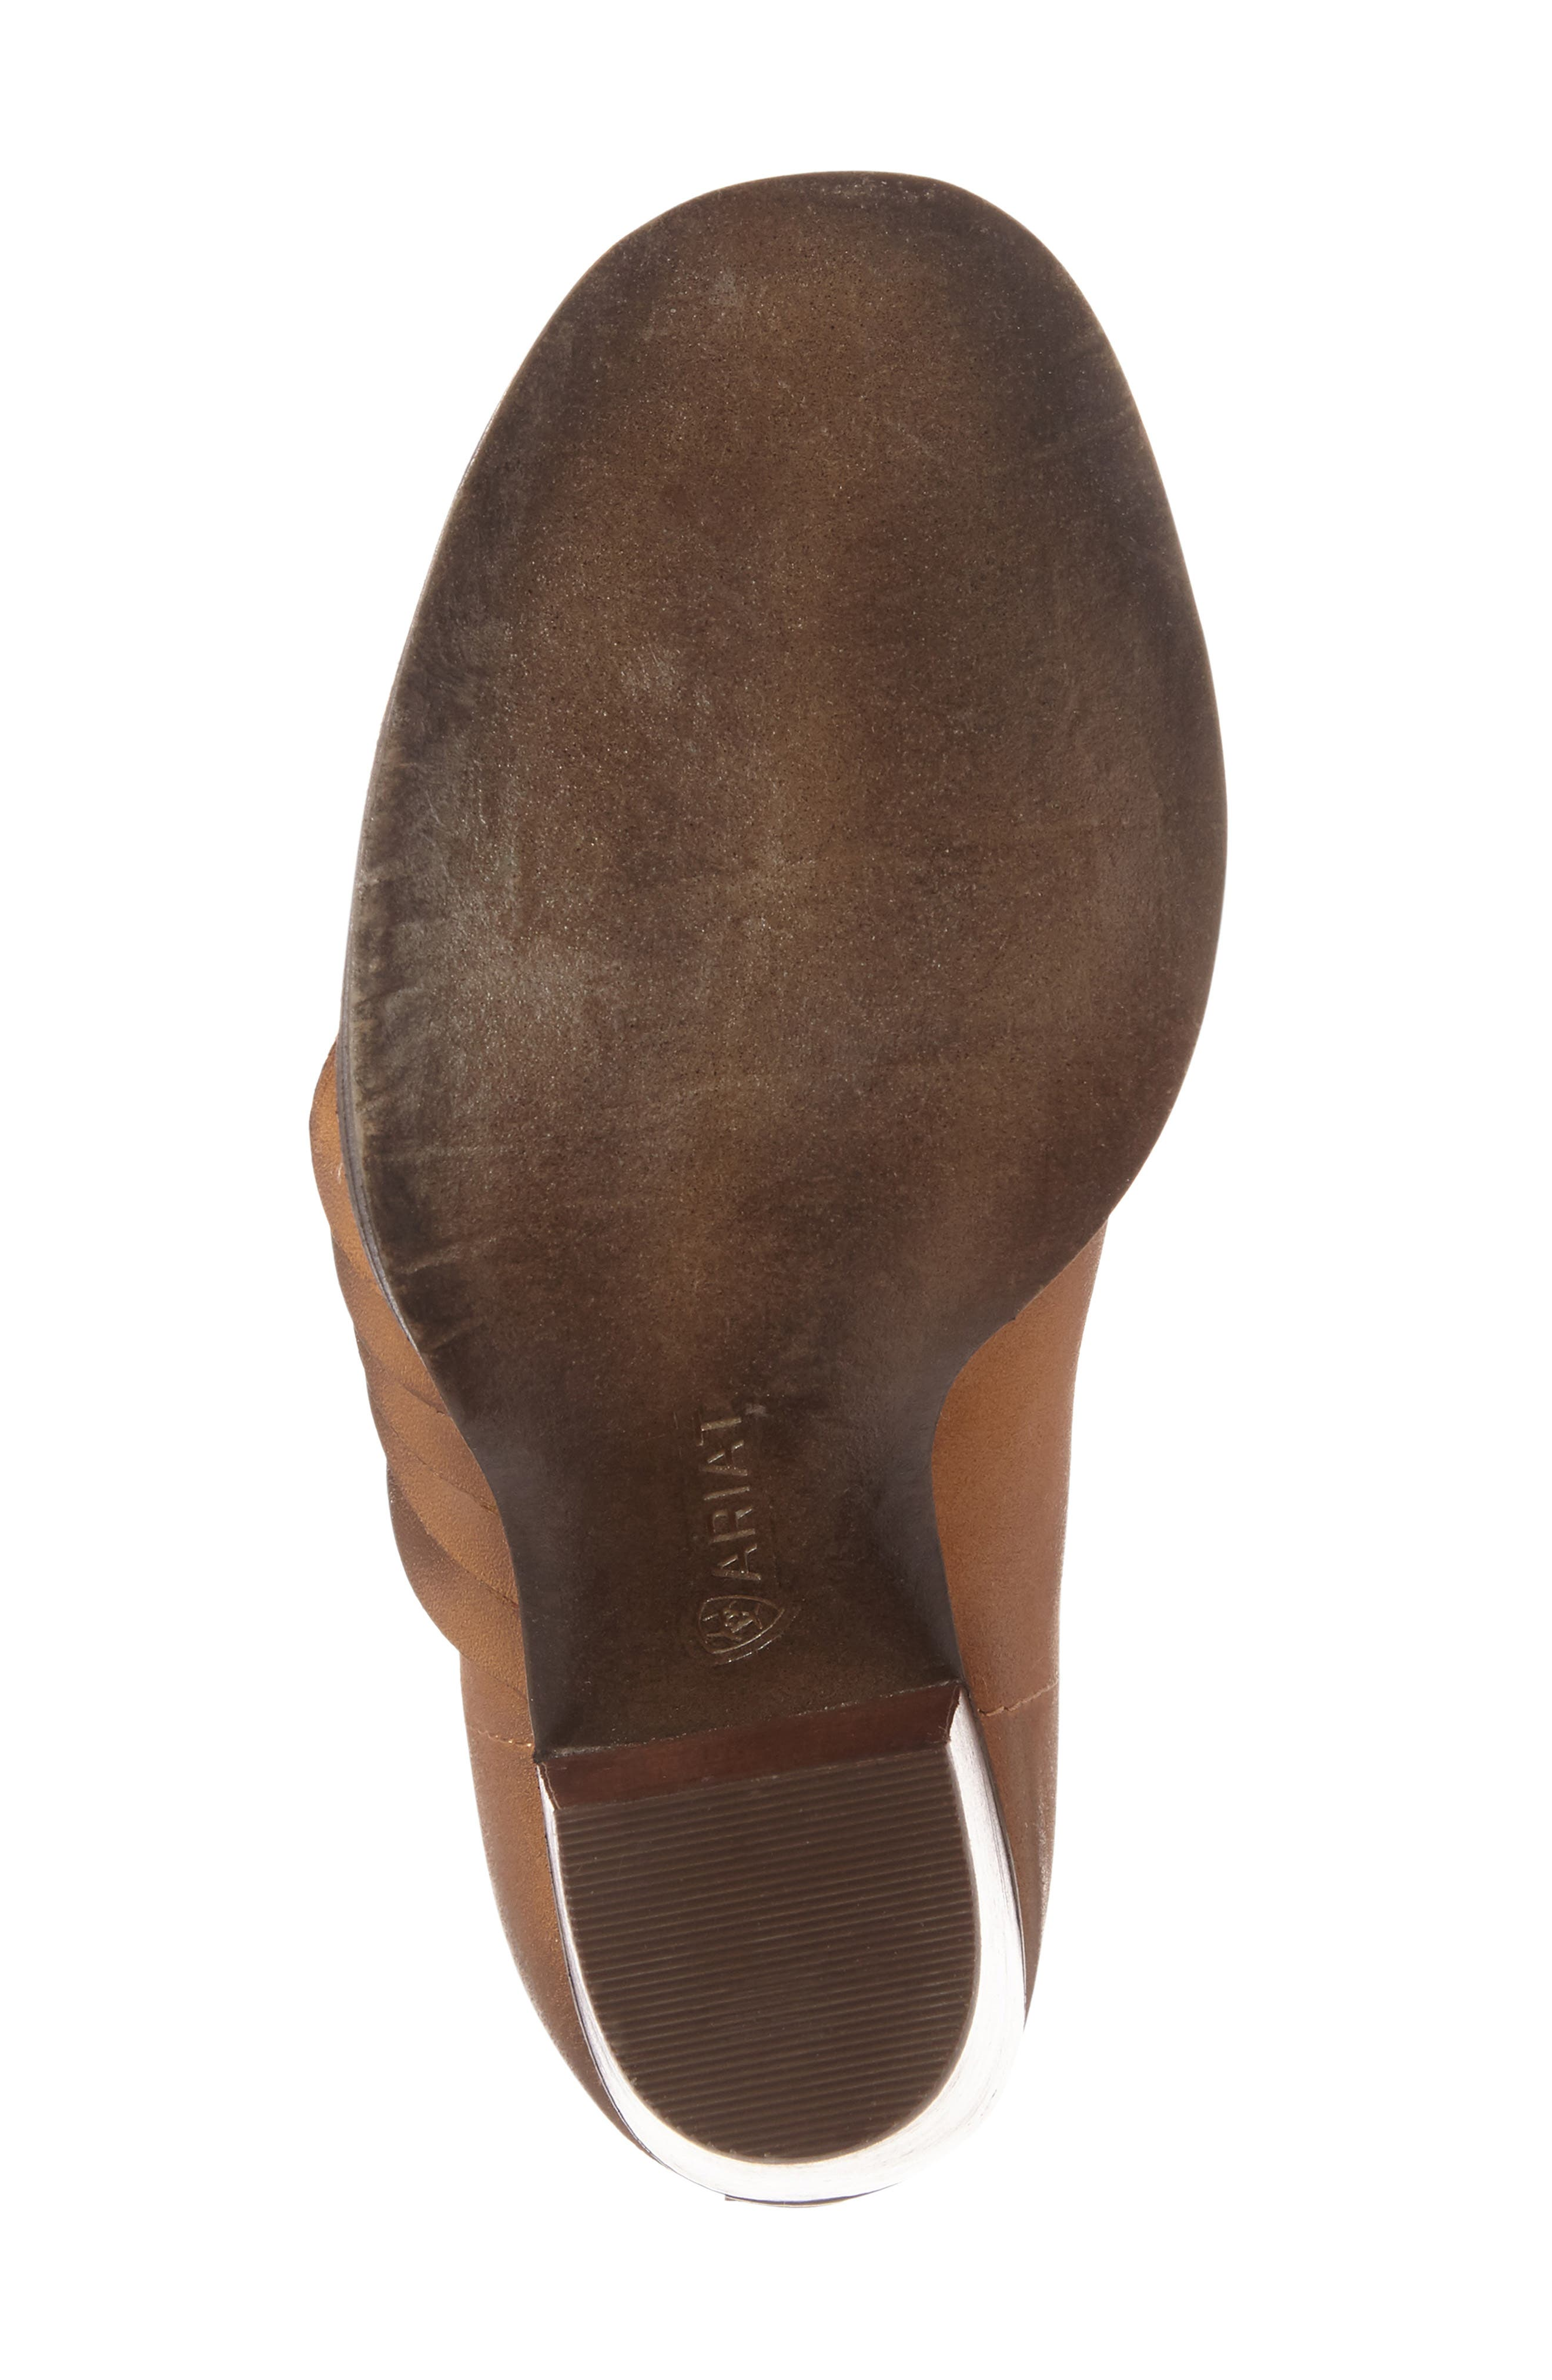 Lindsley Peep Toe Bootie,                             Alternate thumbnail 4, color,                             Tennessee Tan Leather